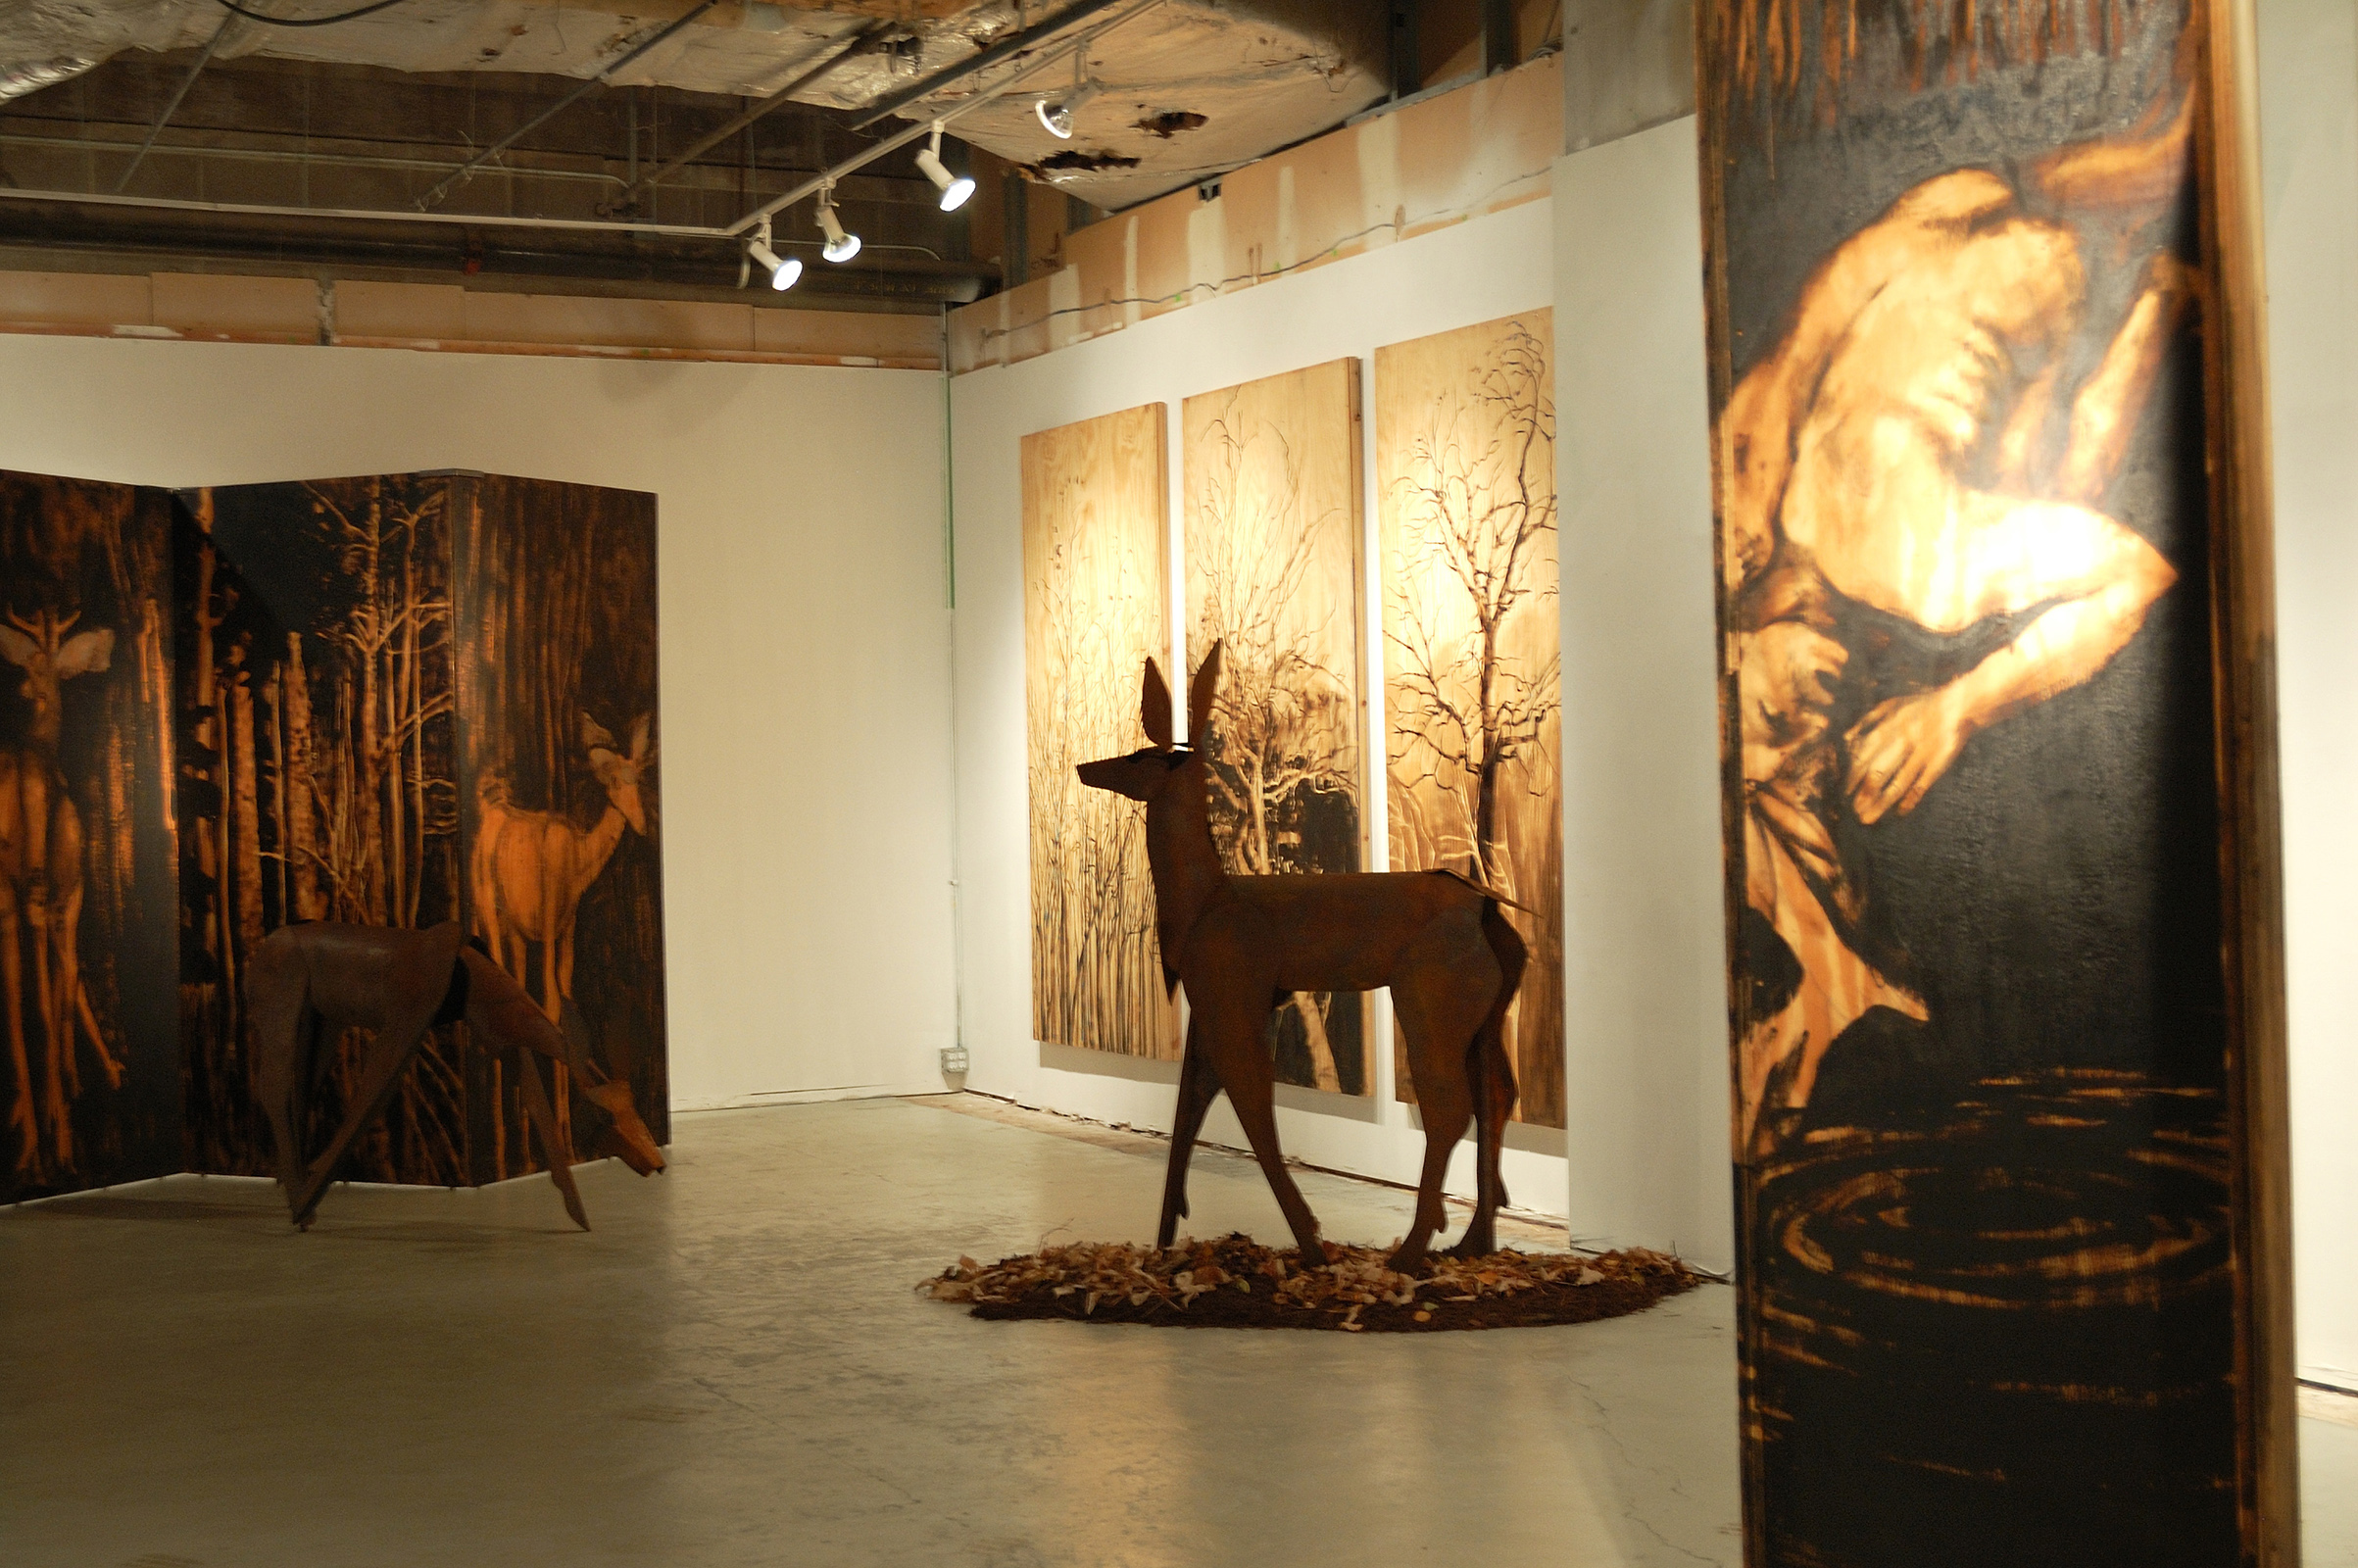 """Living Room"" was a one-person show at Gallery 13, 811 LaSalle St., Minneapolis, MN.  The animals are life-size, Corten steel, the panels, both freestanding  and wall-hung, are each 4' x 8' plywood, painted in asphaltum."